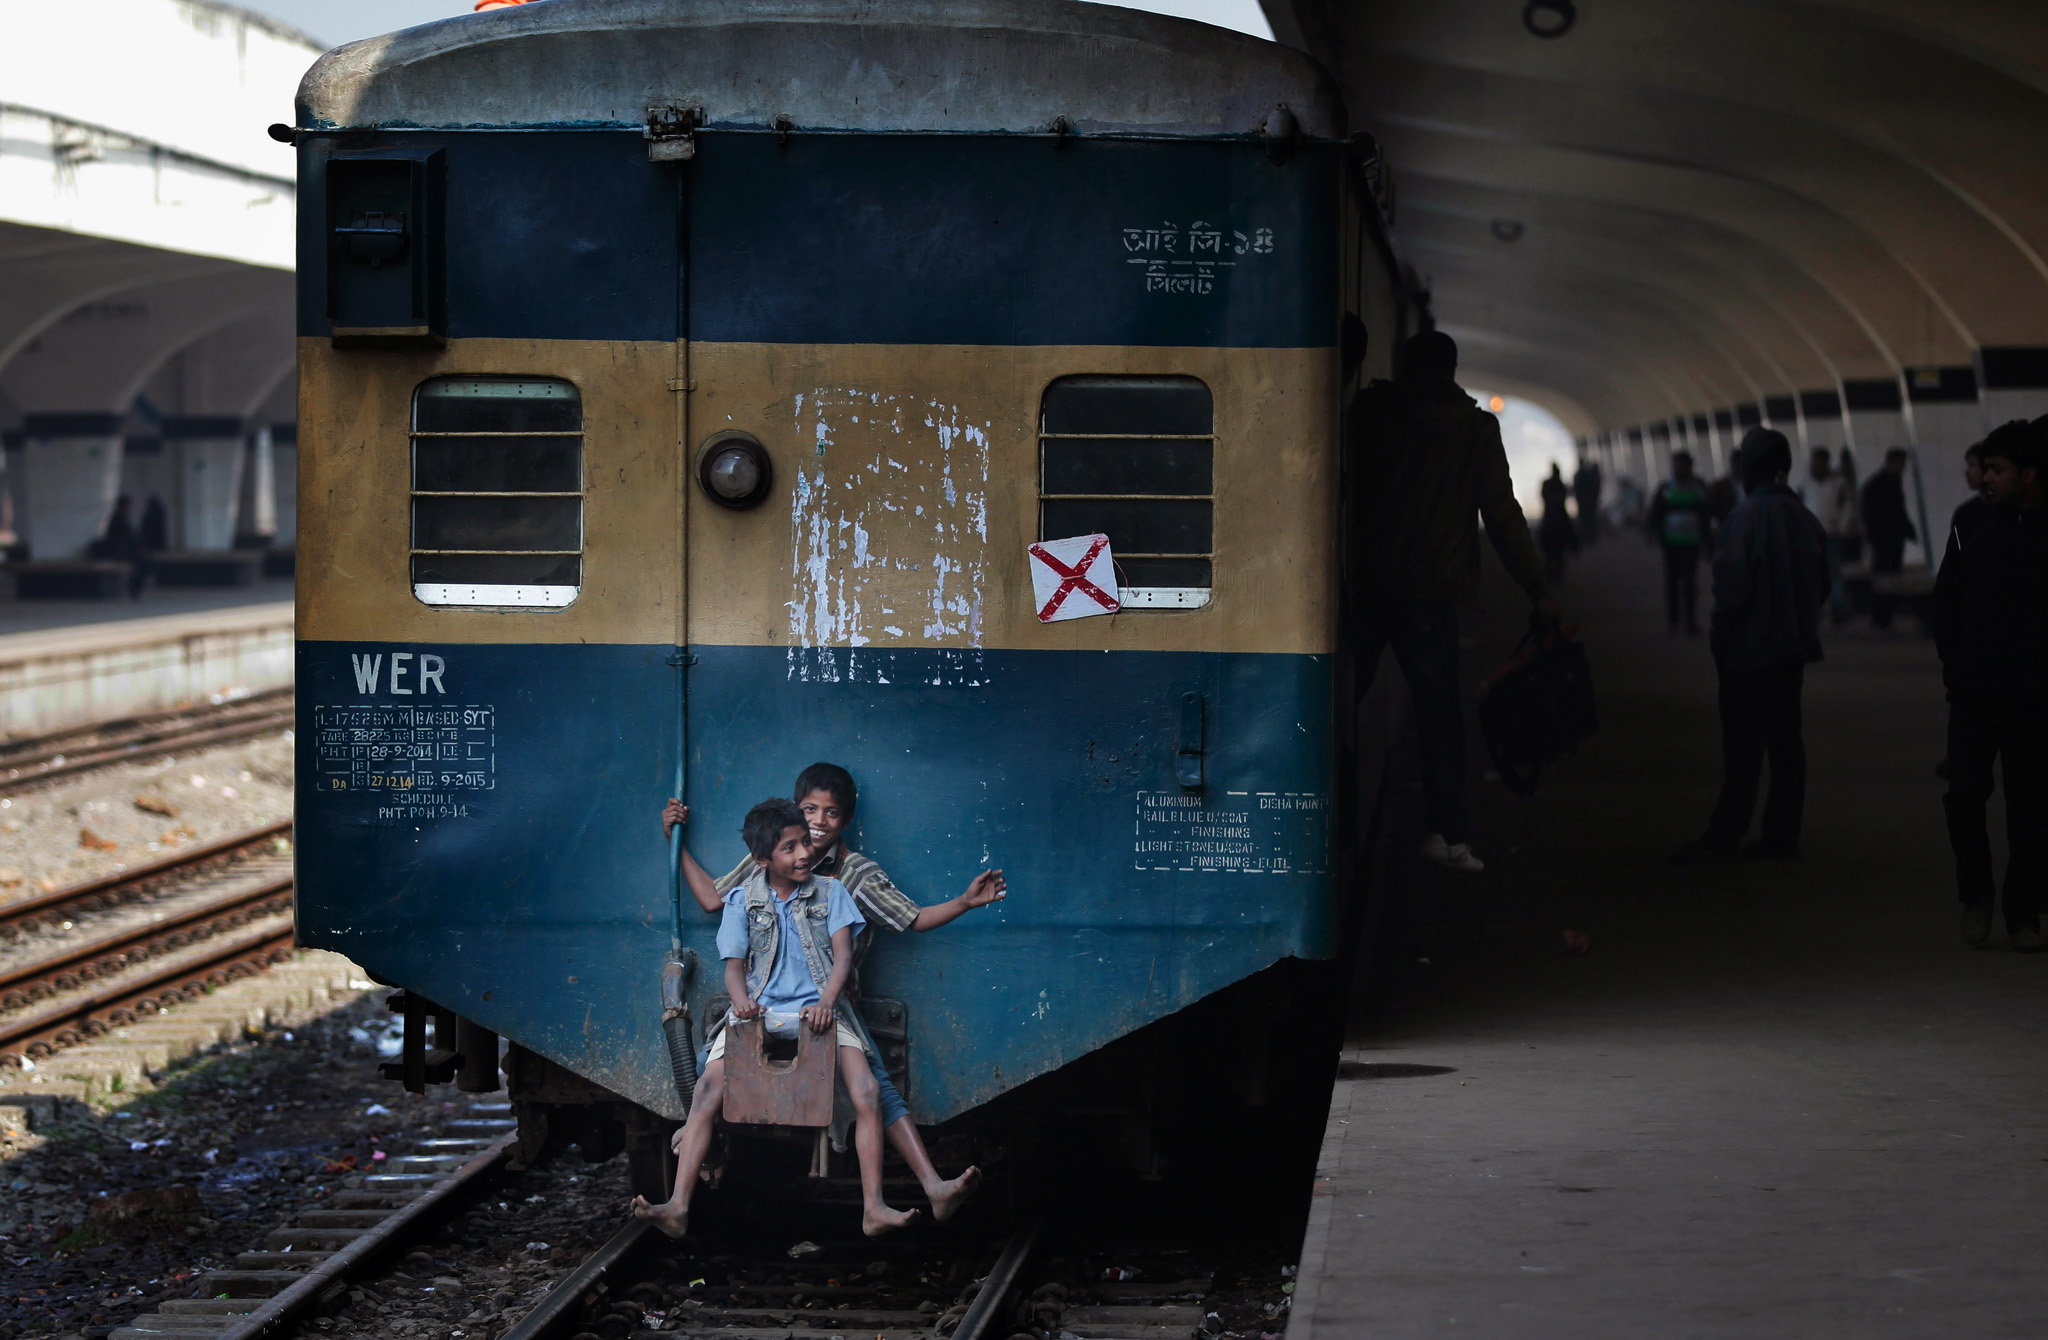 Bangladeshi children travel at the back of a moving train at a railway station during the second day of a 48-hour general strike called by the opposition Bangladesh Nationalist Party (BNP) in Dhaka, Bangladesh.